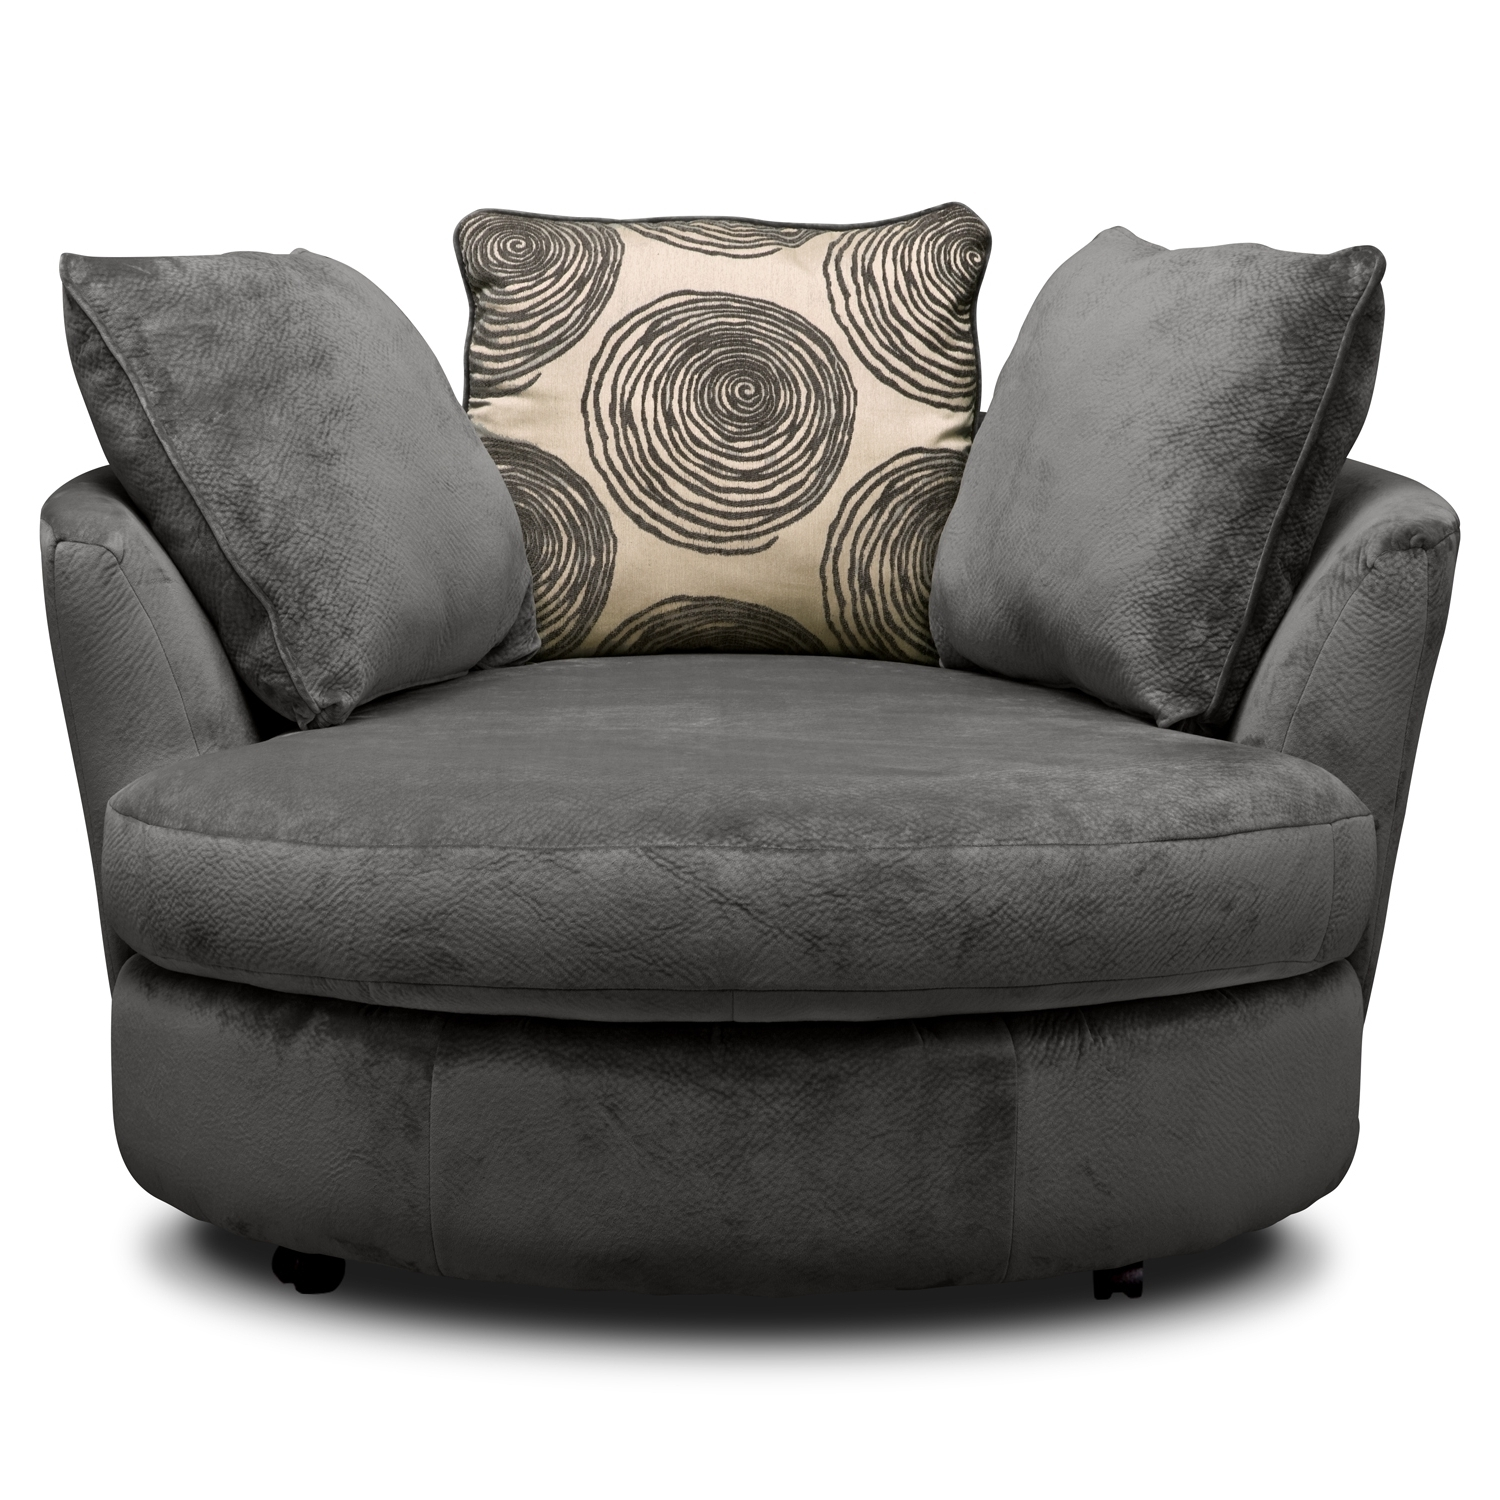 2019 Large Round Swivel Sofa (View 5 of 20)